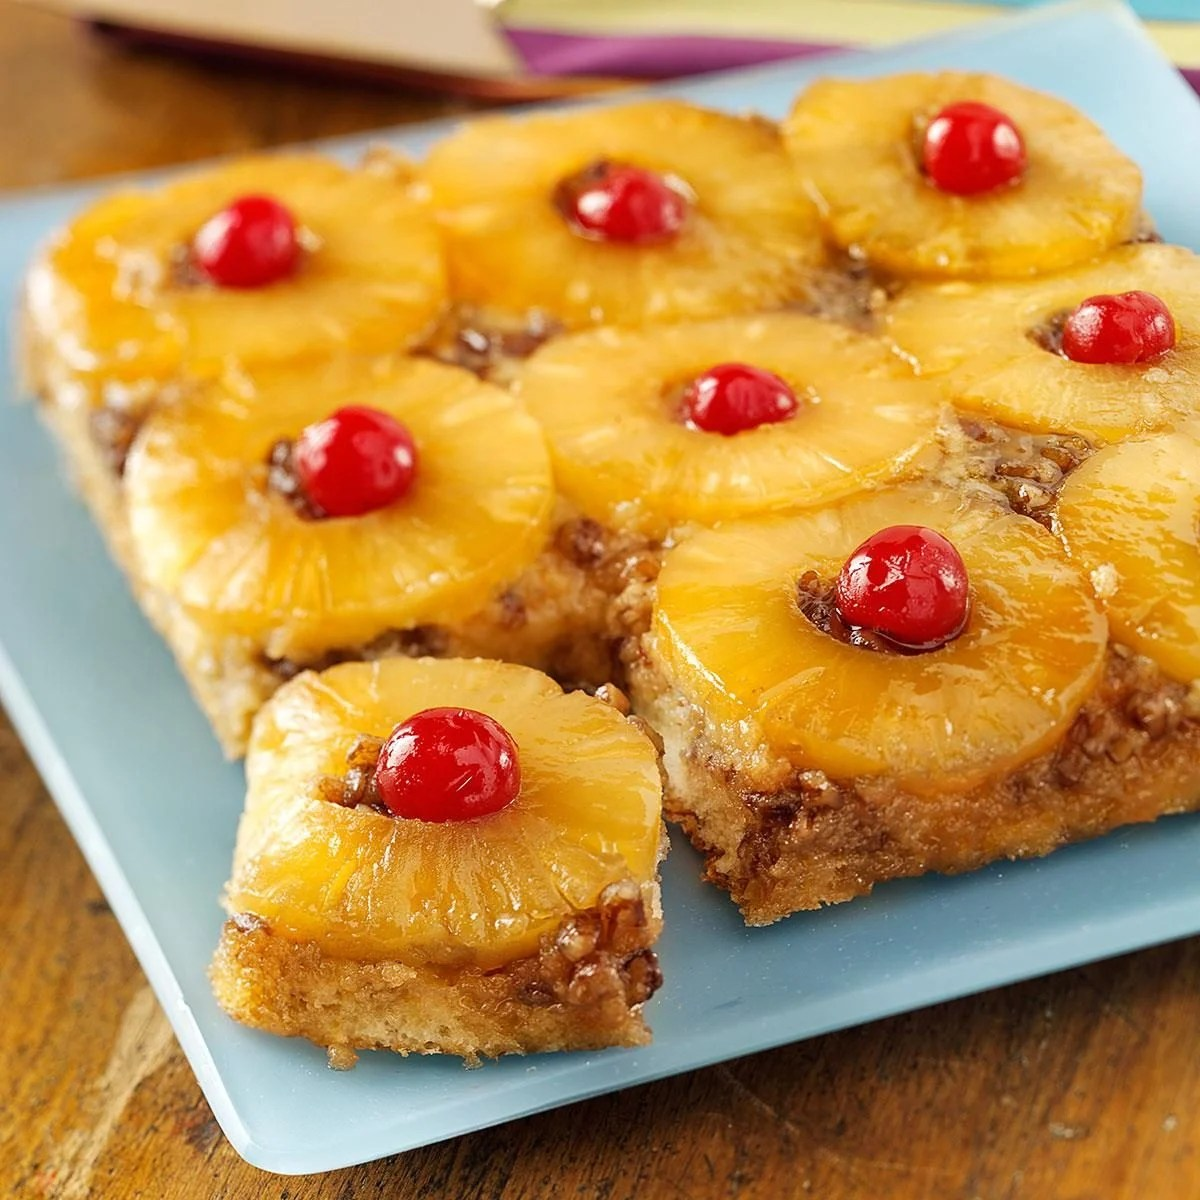 Topping Pineapple Upside Cake